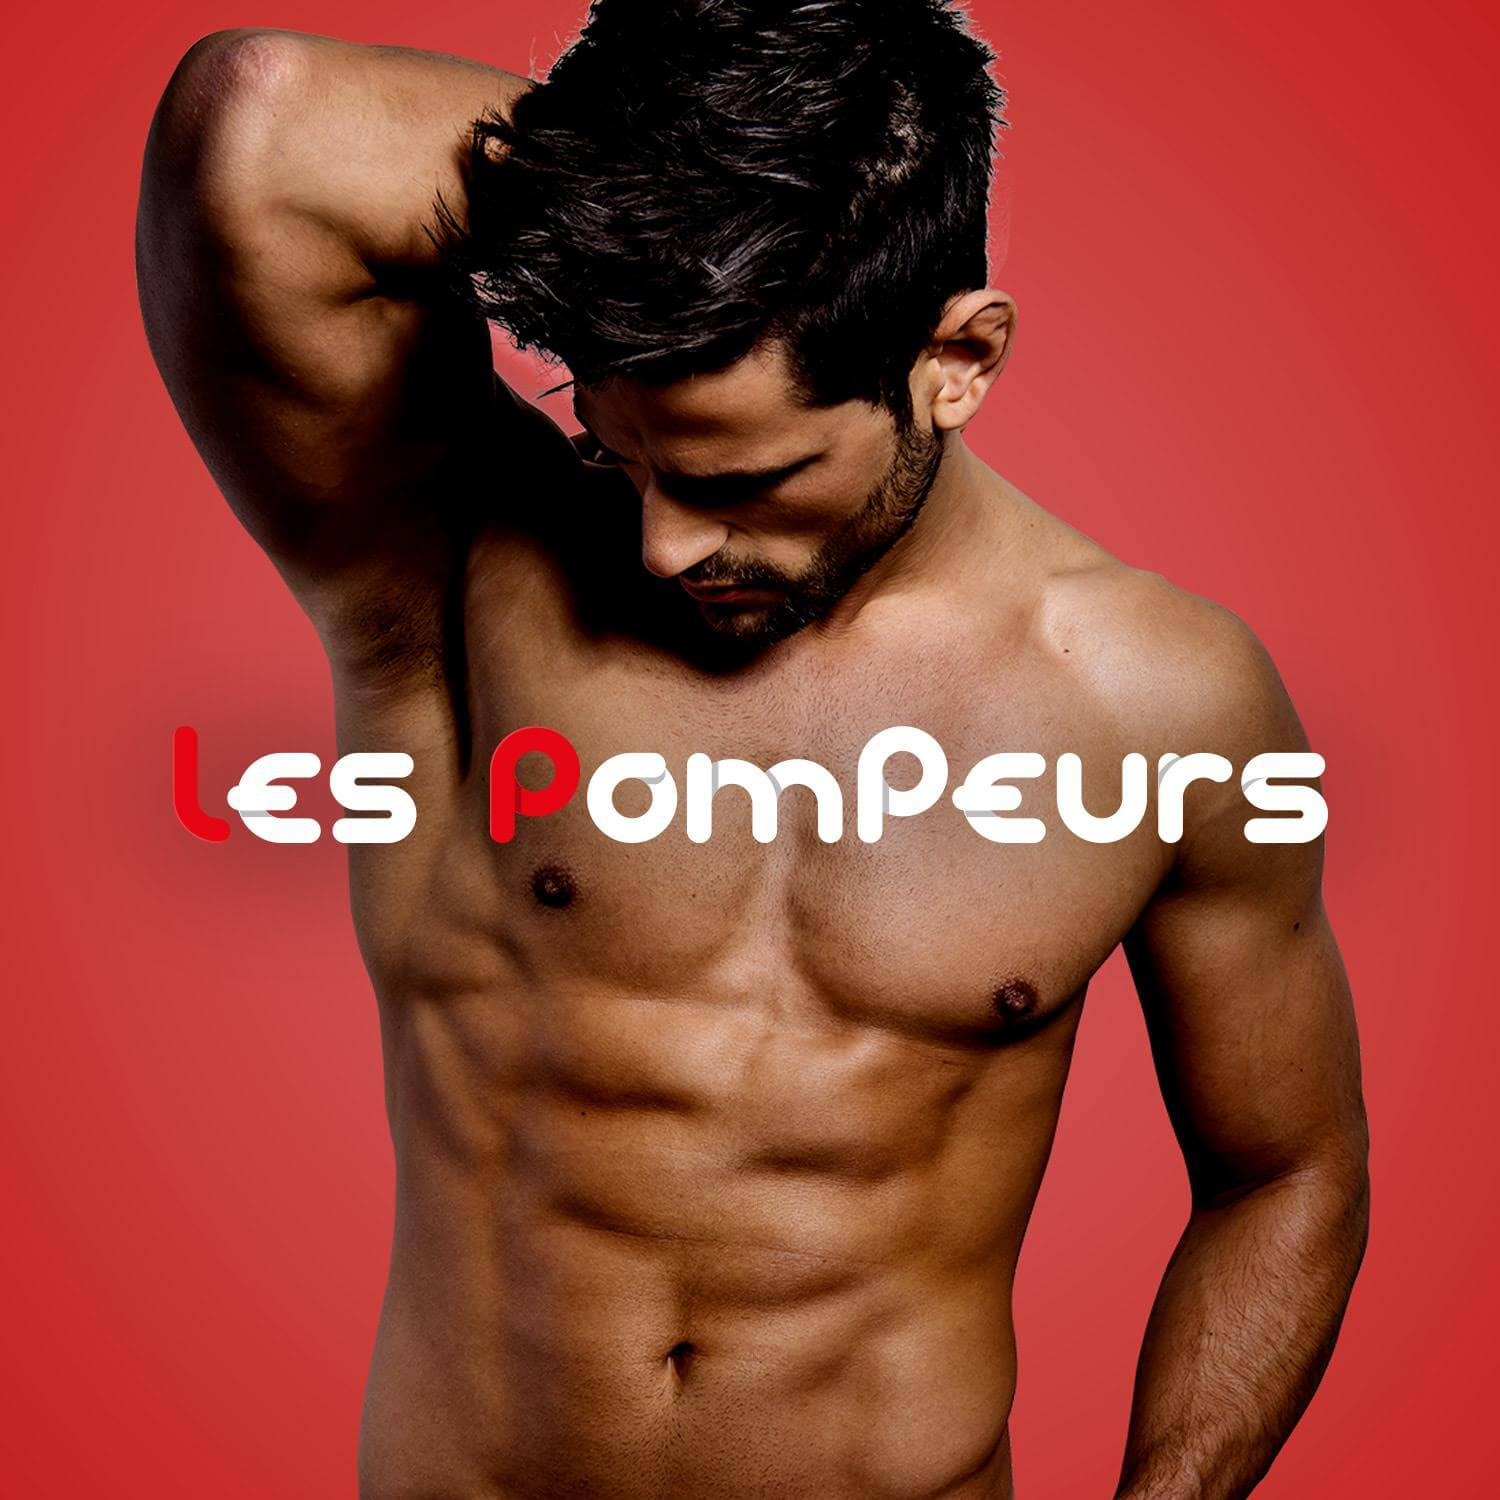 esclave gay plan cul gay avignon